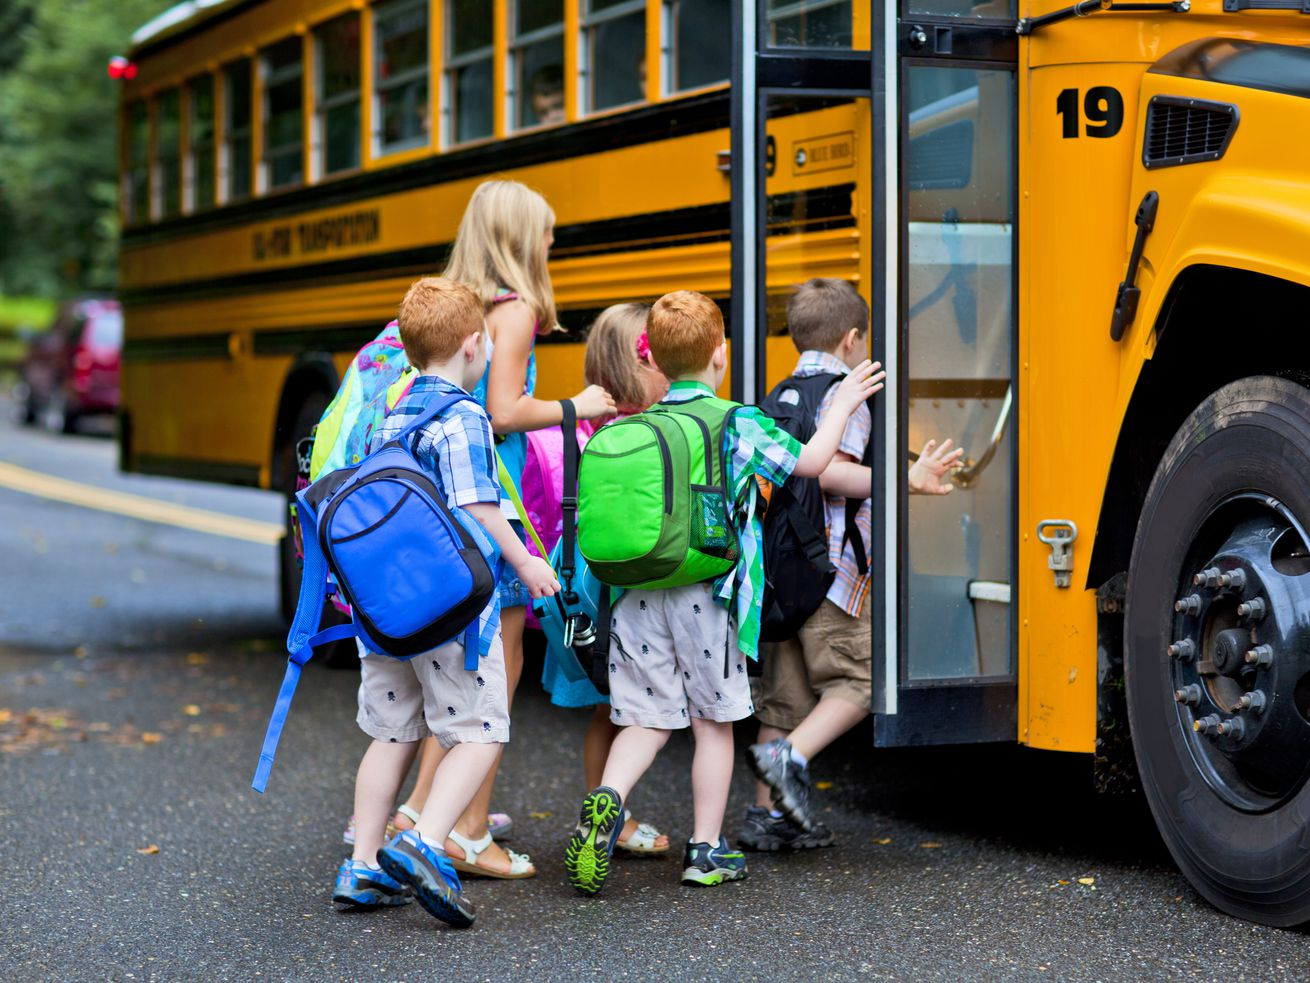 As Utah students head back to school, a growing percentage are going to charter schools or are home-schooled